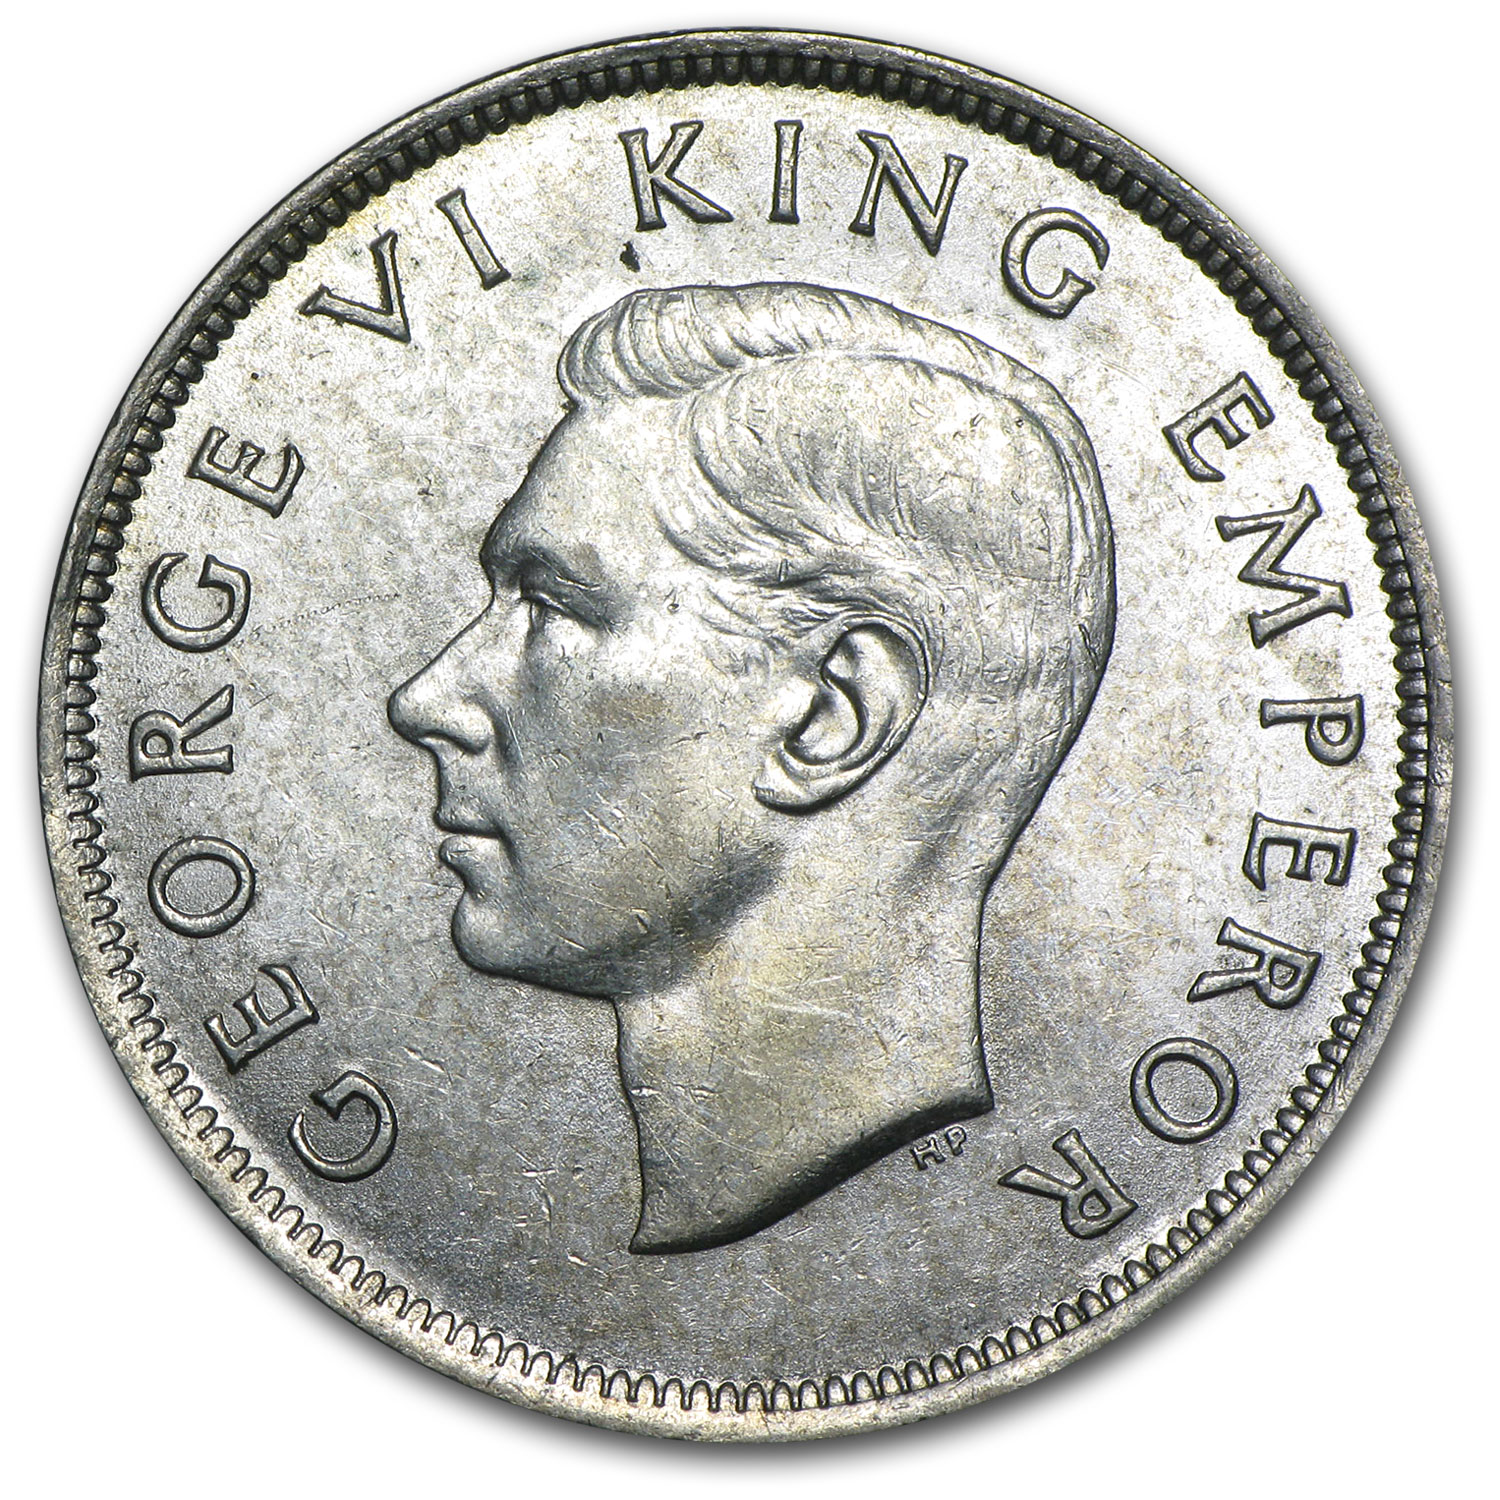 New Zealand Silver 1/2 Crown of George VI - AU